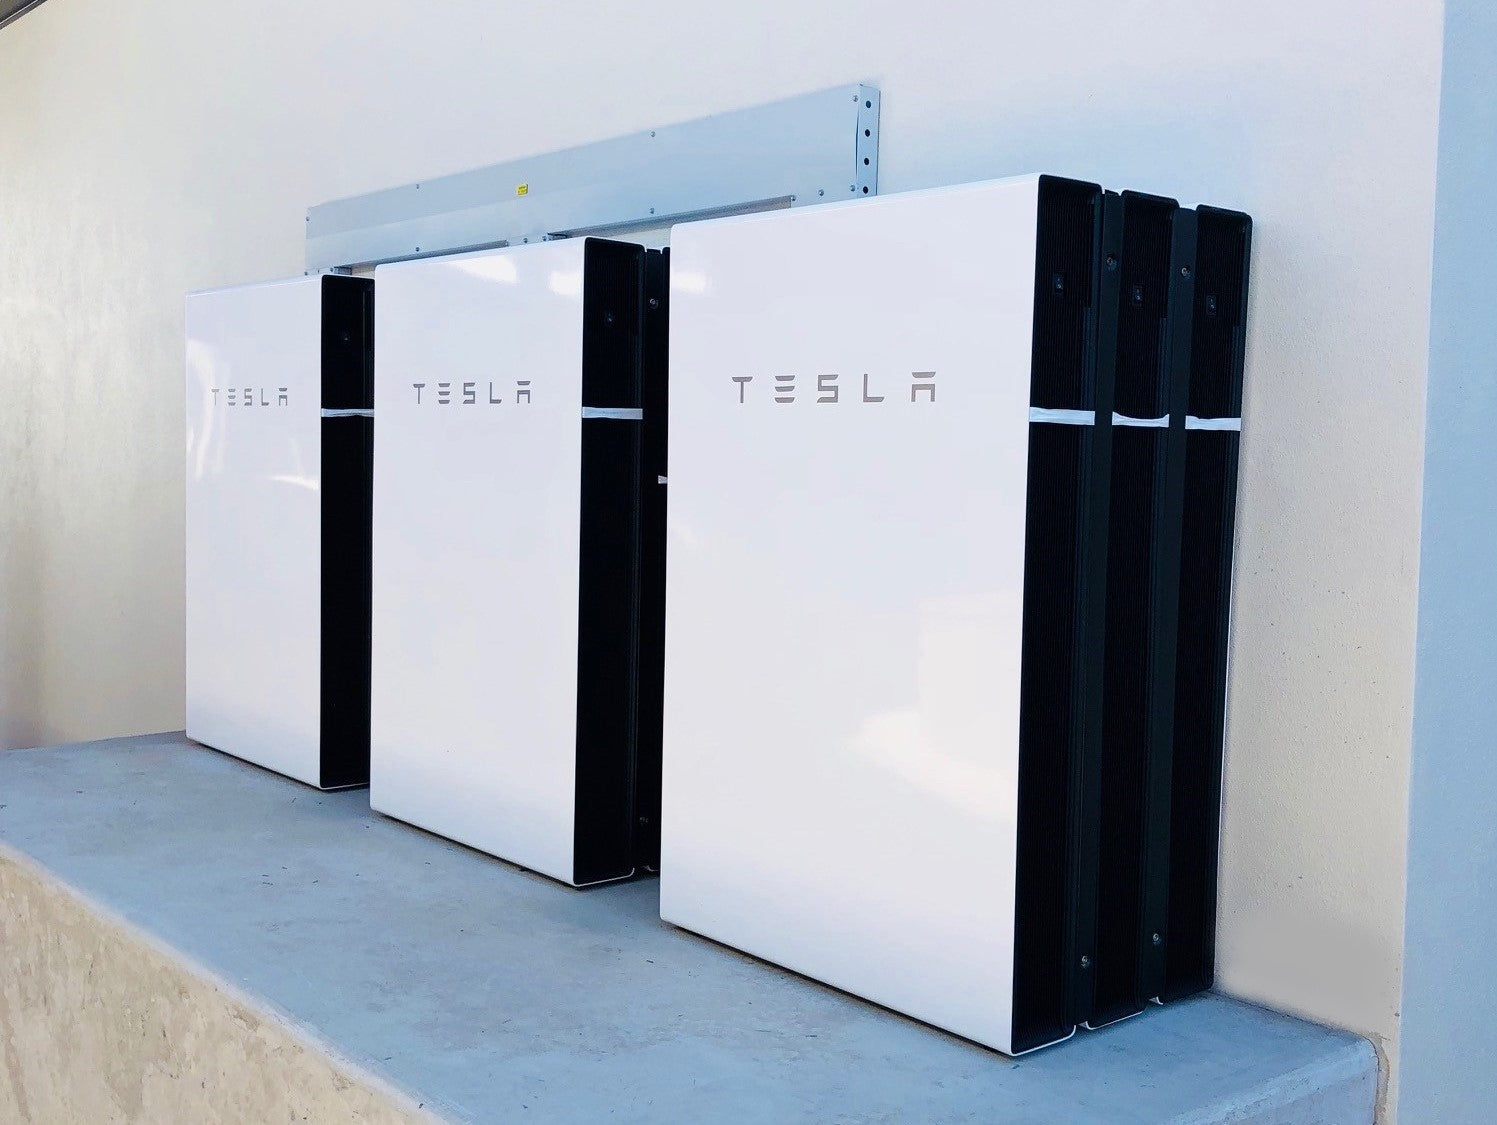 Tesla Energy Business Global Expansion Continues as Europe Becomes #1 For Powerwall Export